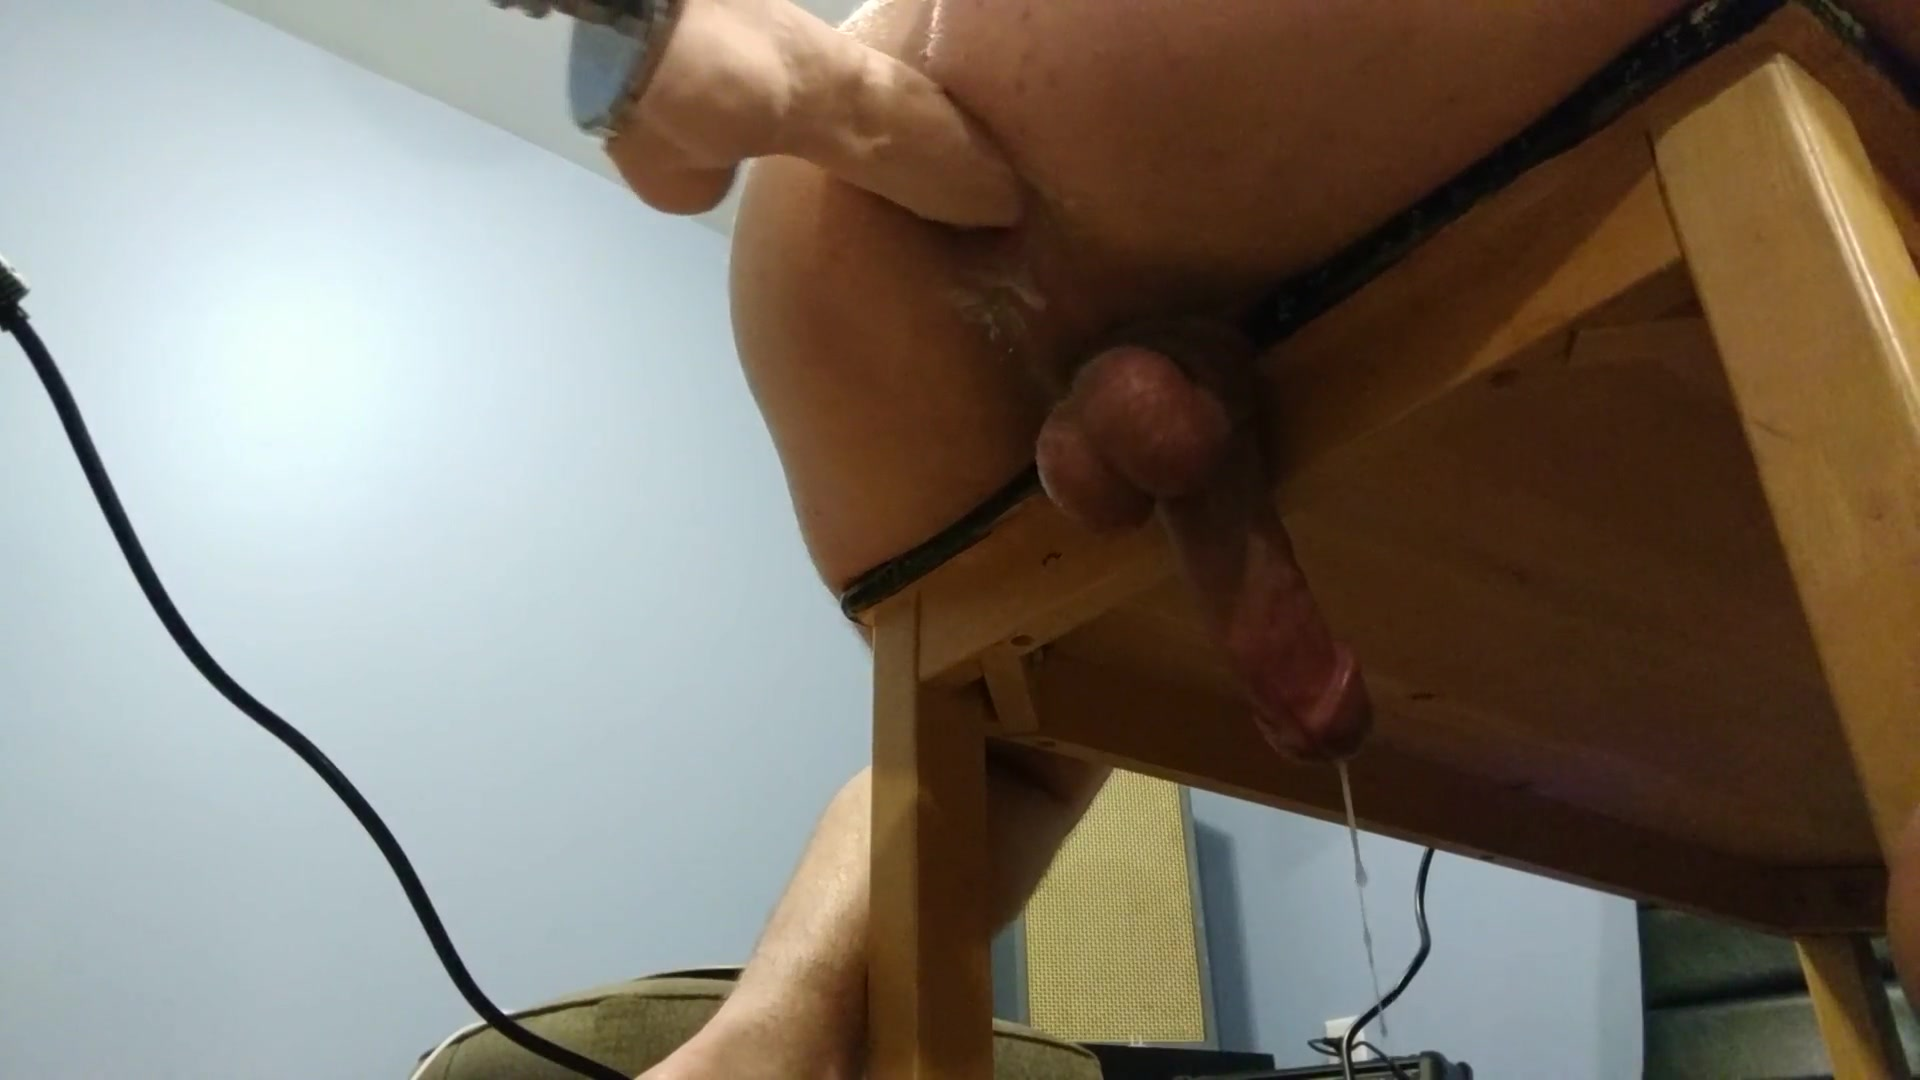 produced orgasm hands fuck free anal machine